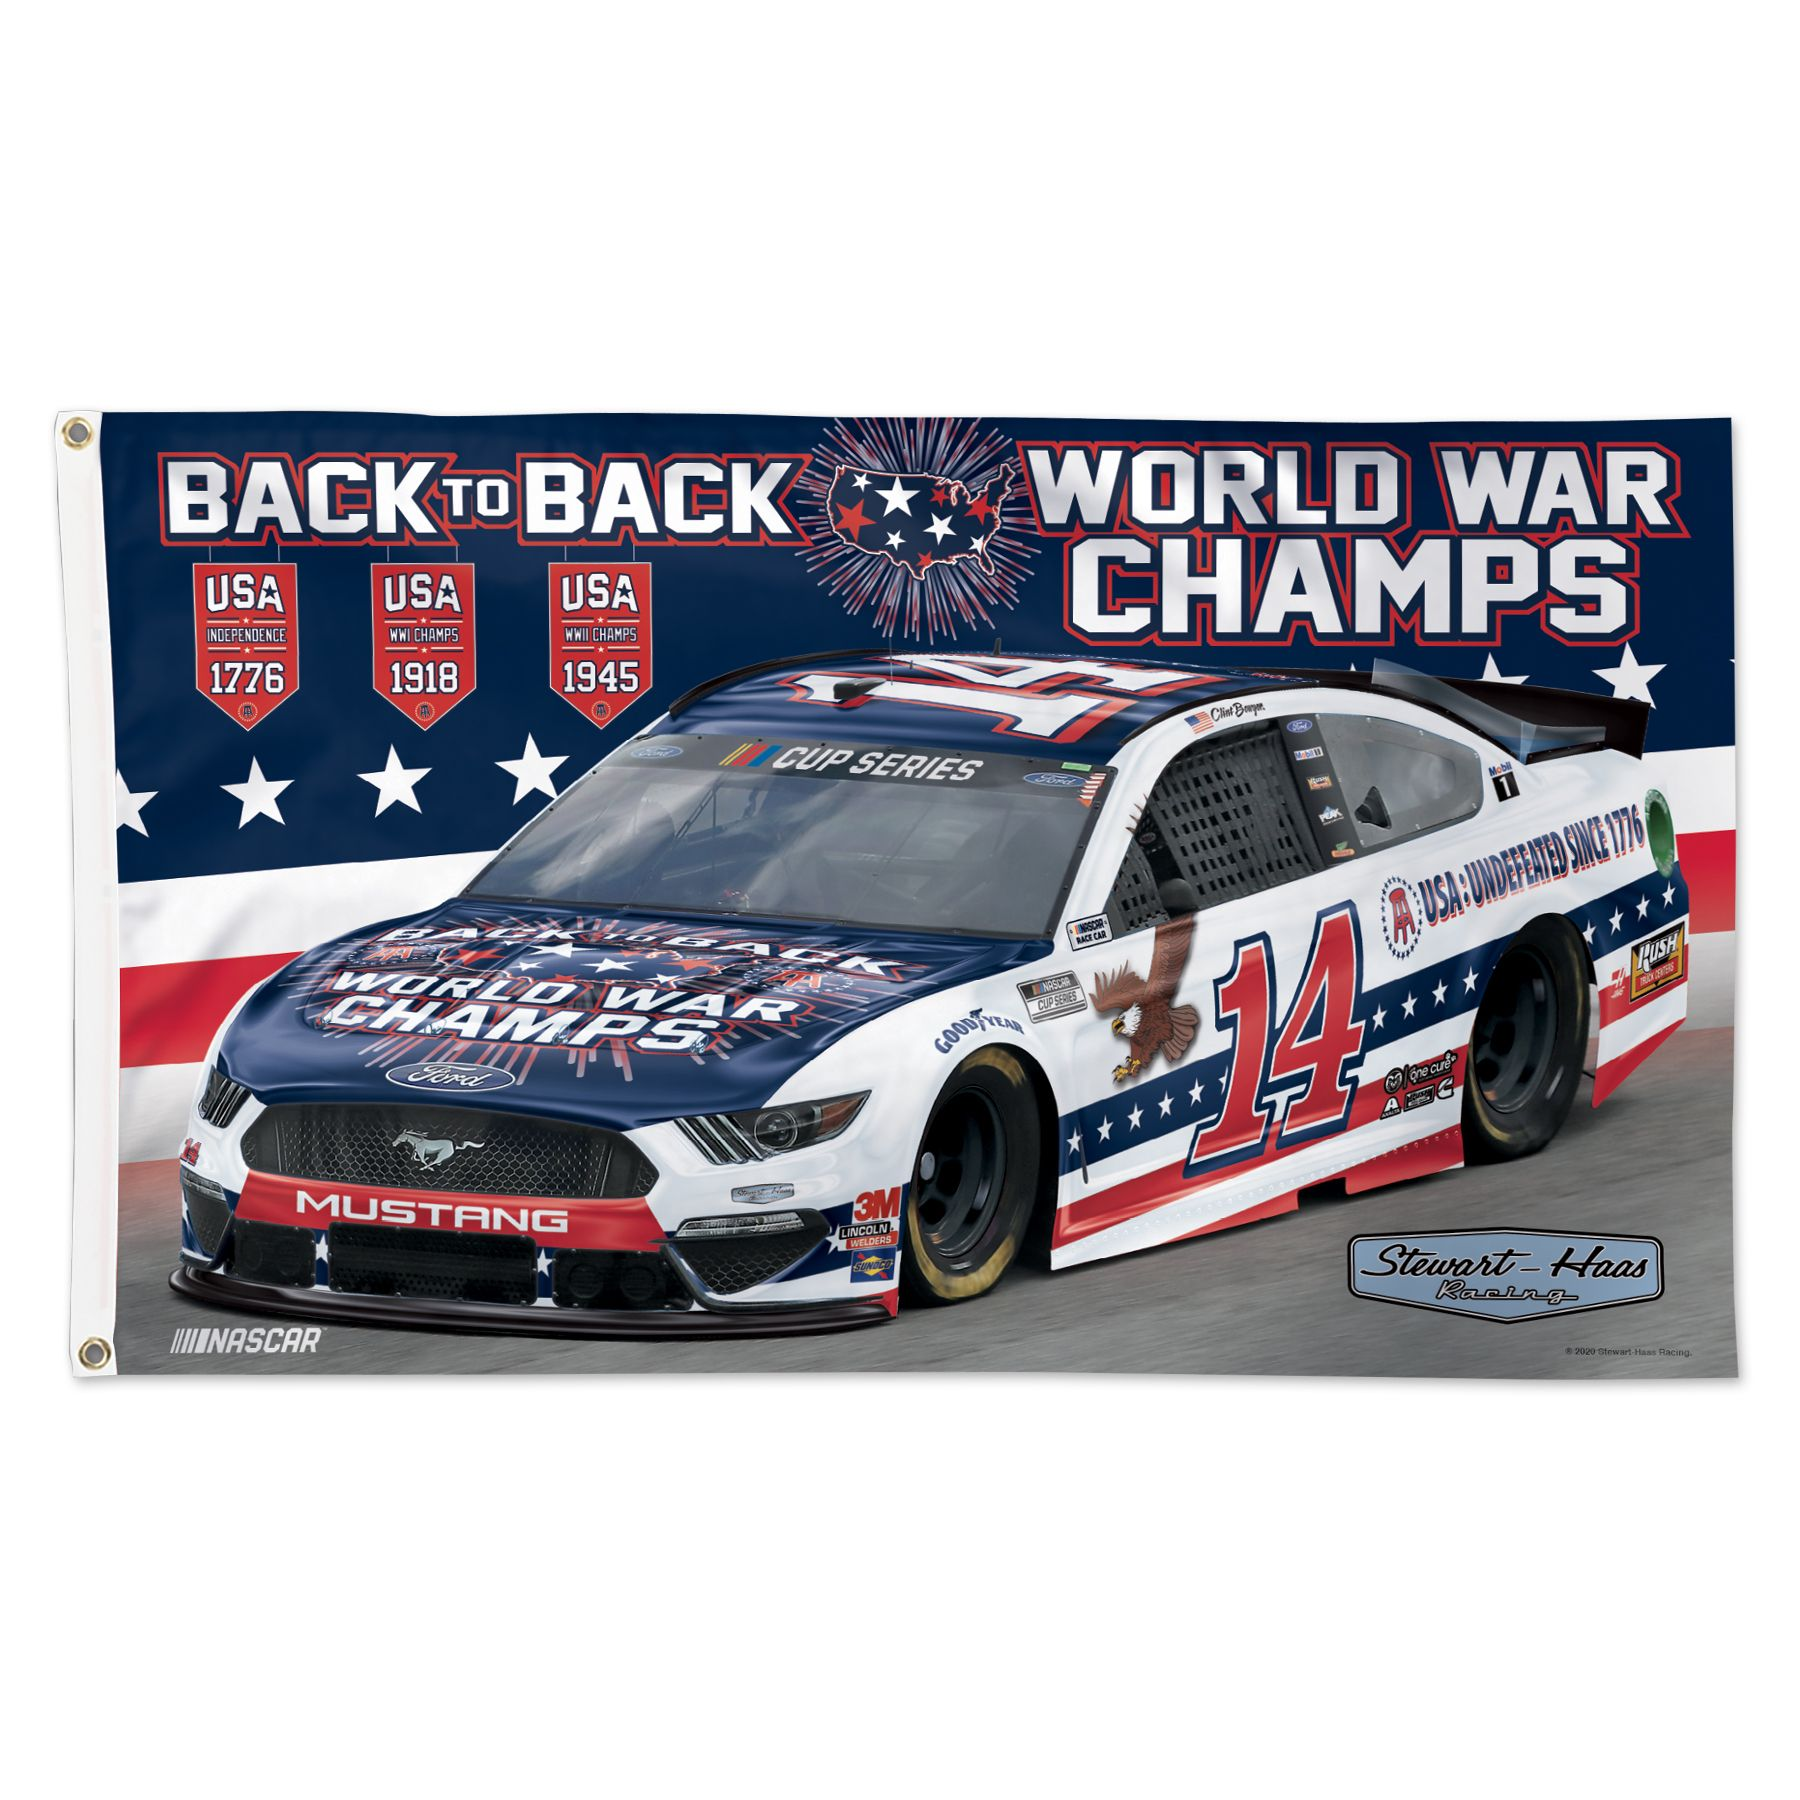 Clint Bowyer 2020 Barstool Stewart-Haas Racing 3X5 Flag